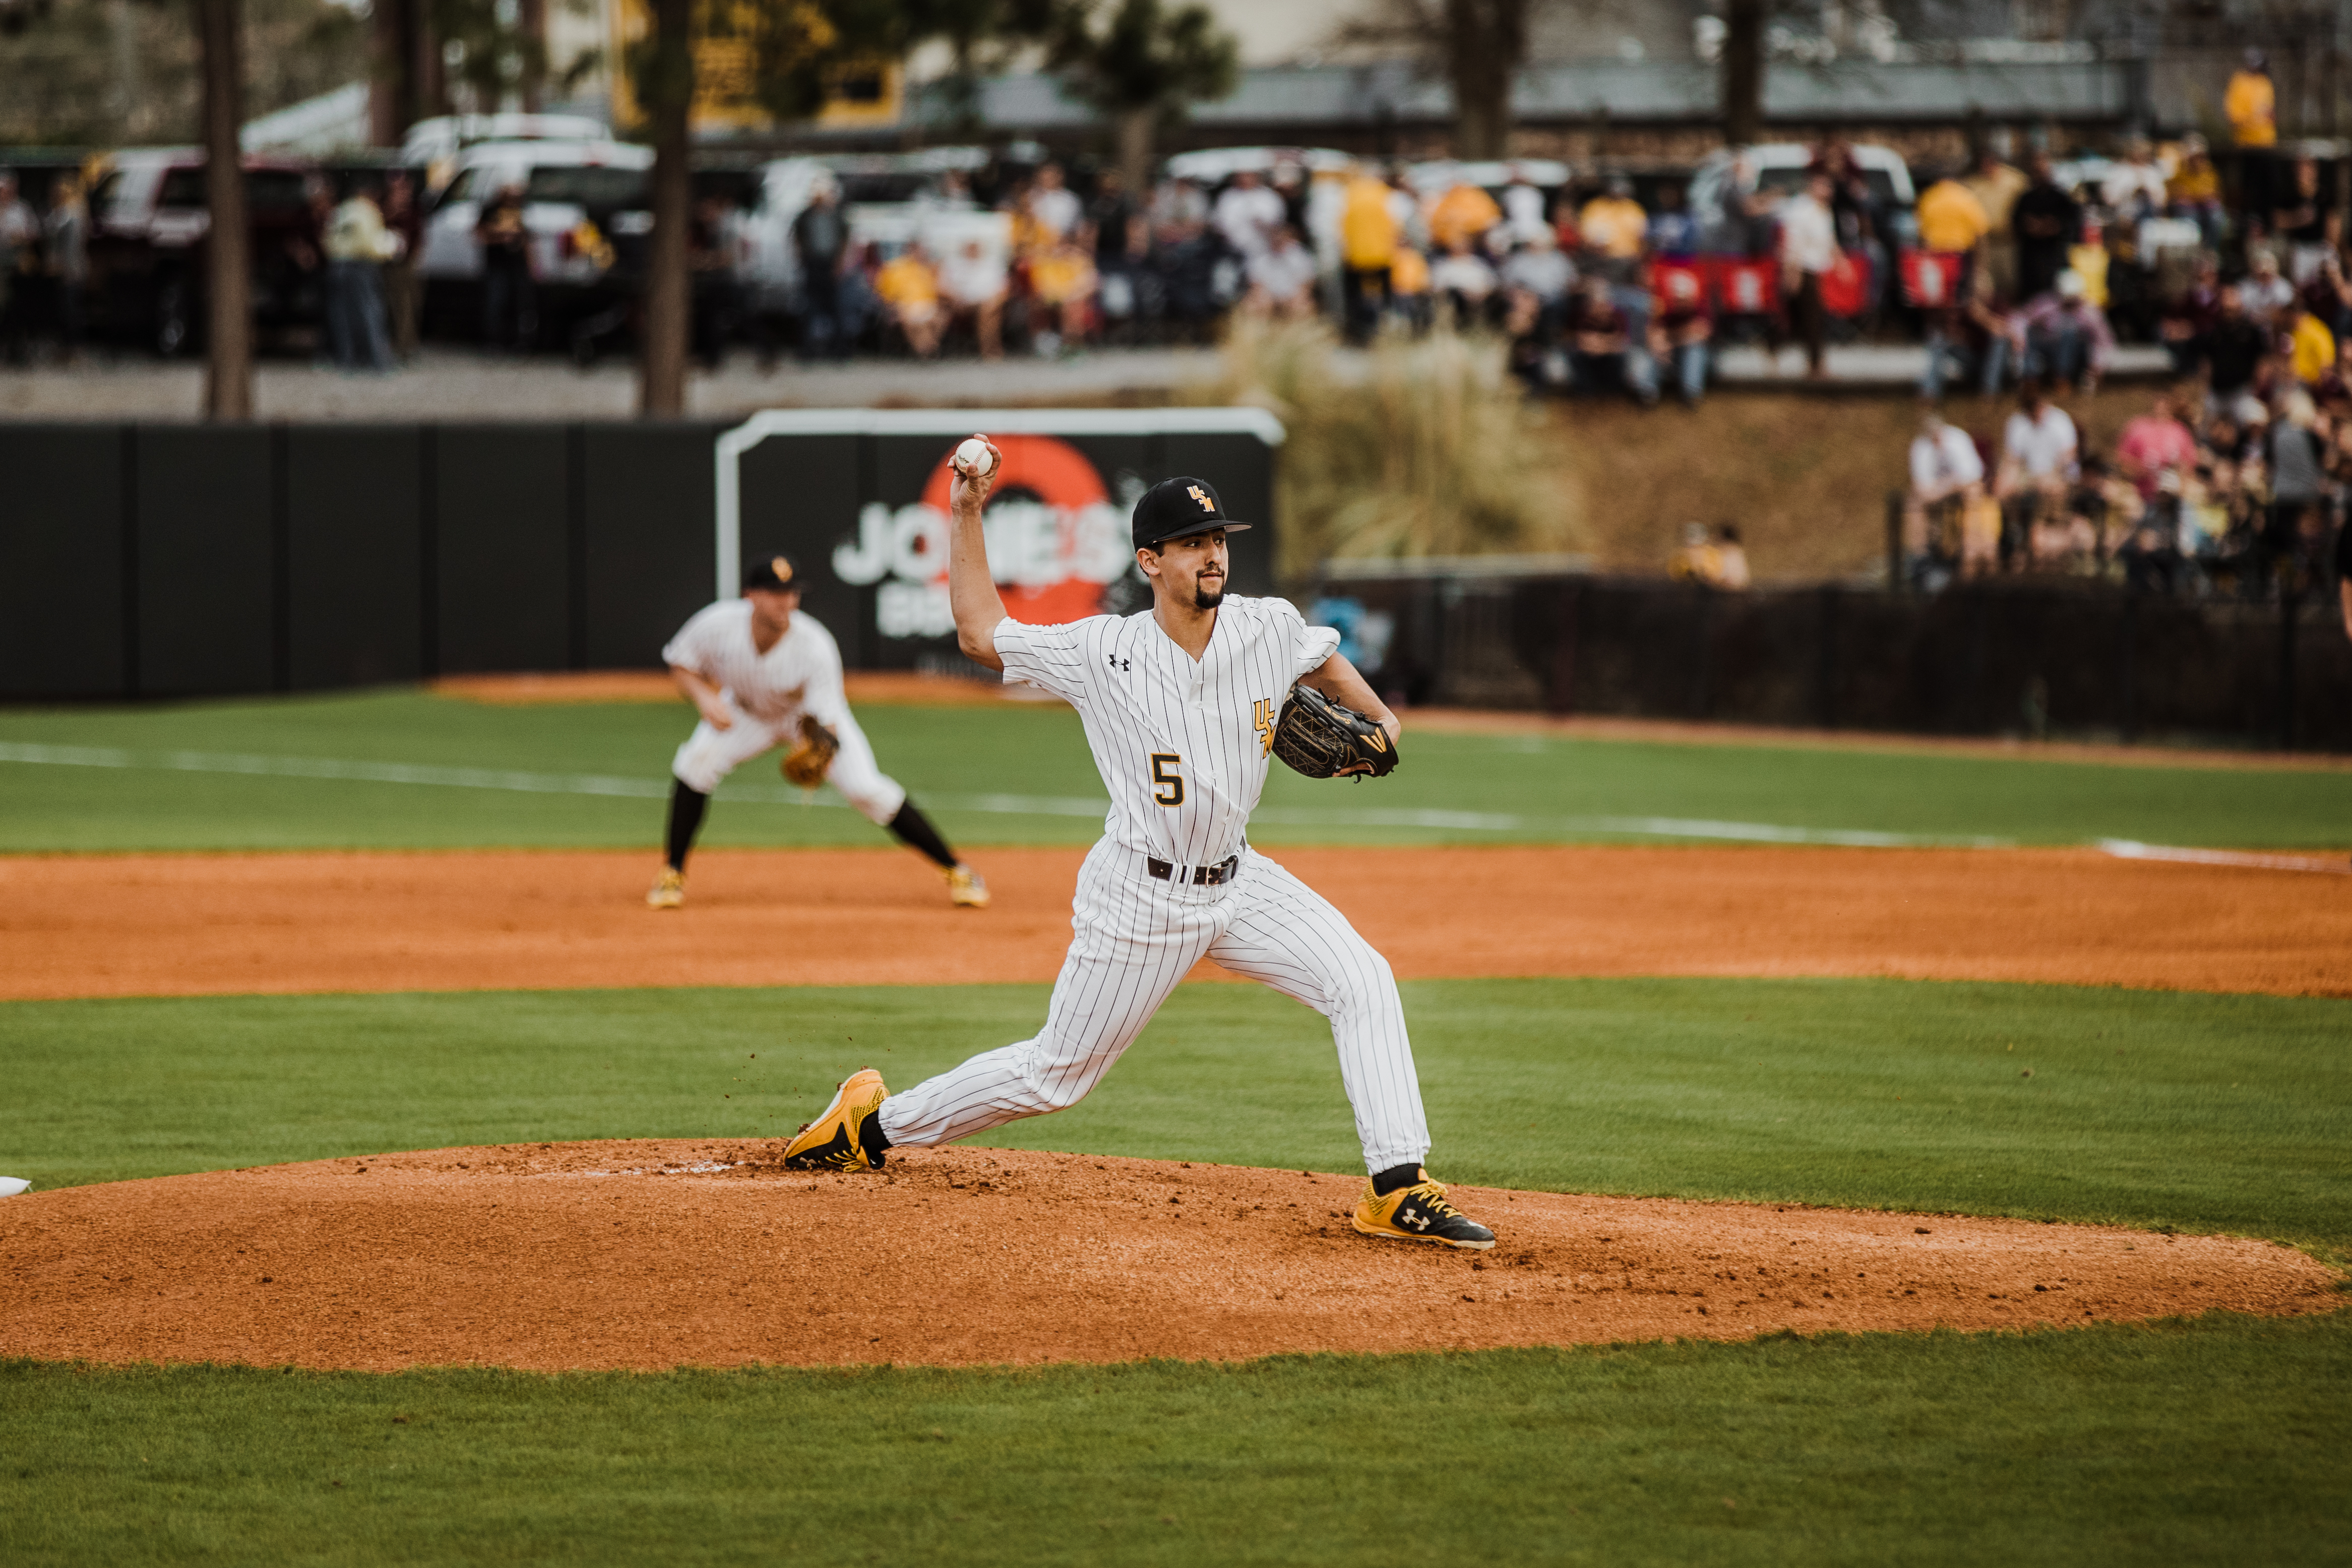 Southern Miss completes sweep with 5-2 win over Miss State